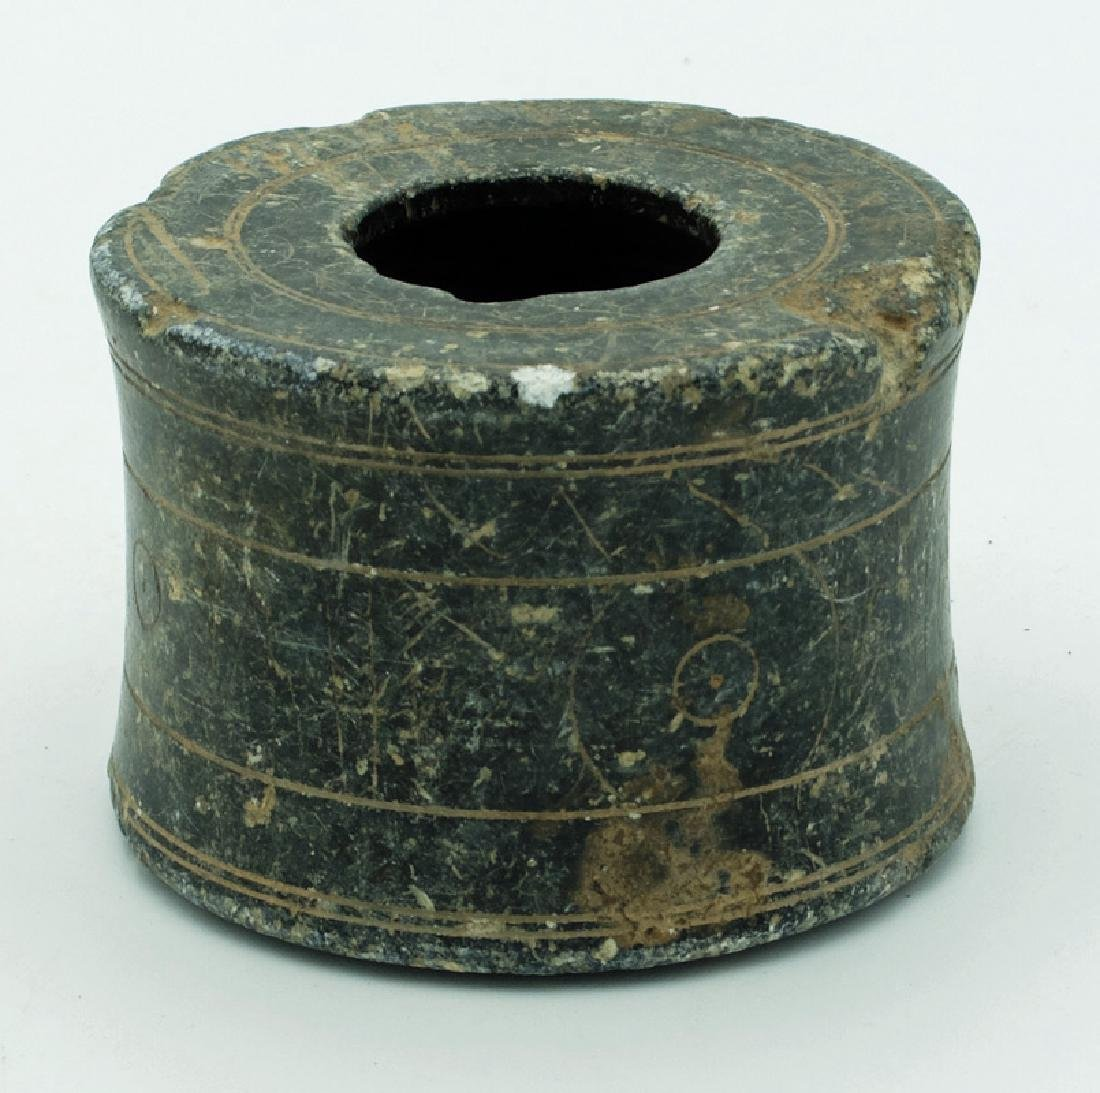 An excellent Bactrian stone container